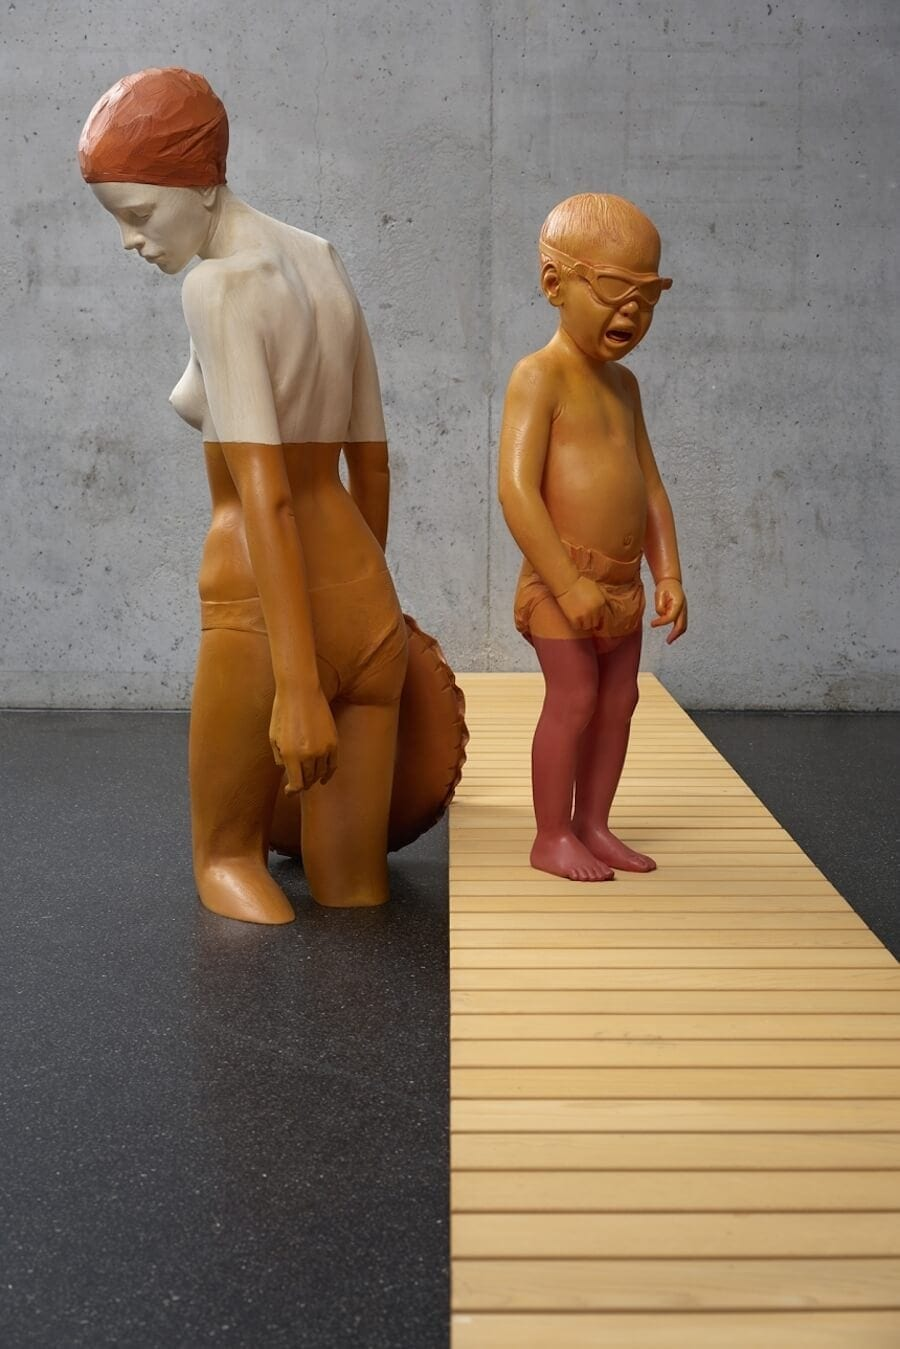 Wood Sculptures That Highlight Environmental Waste by Willy Verginer -